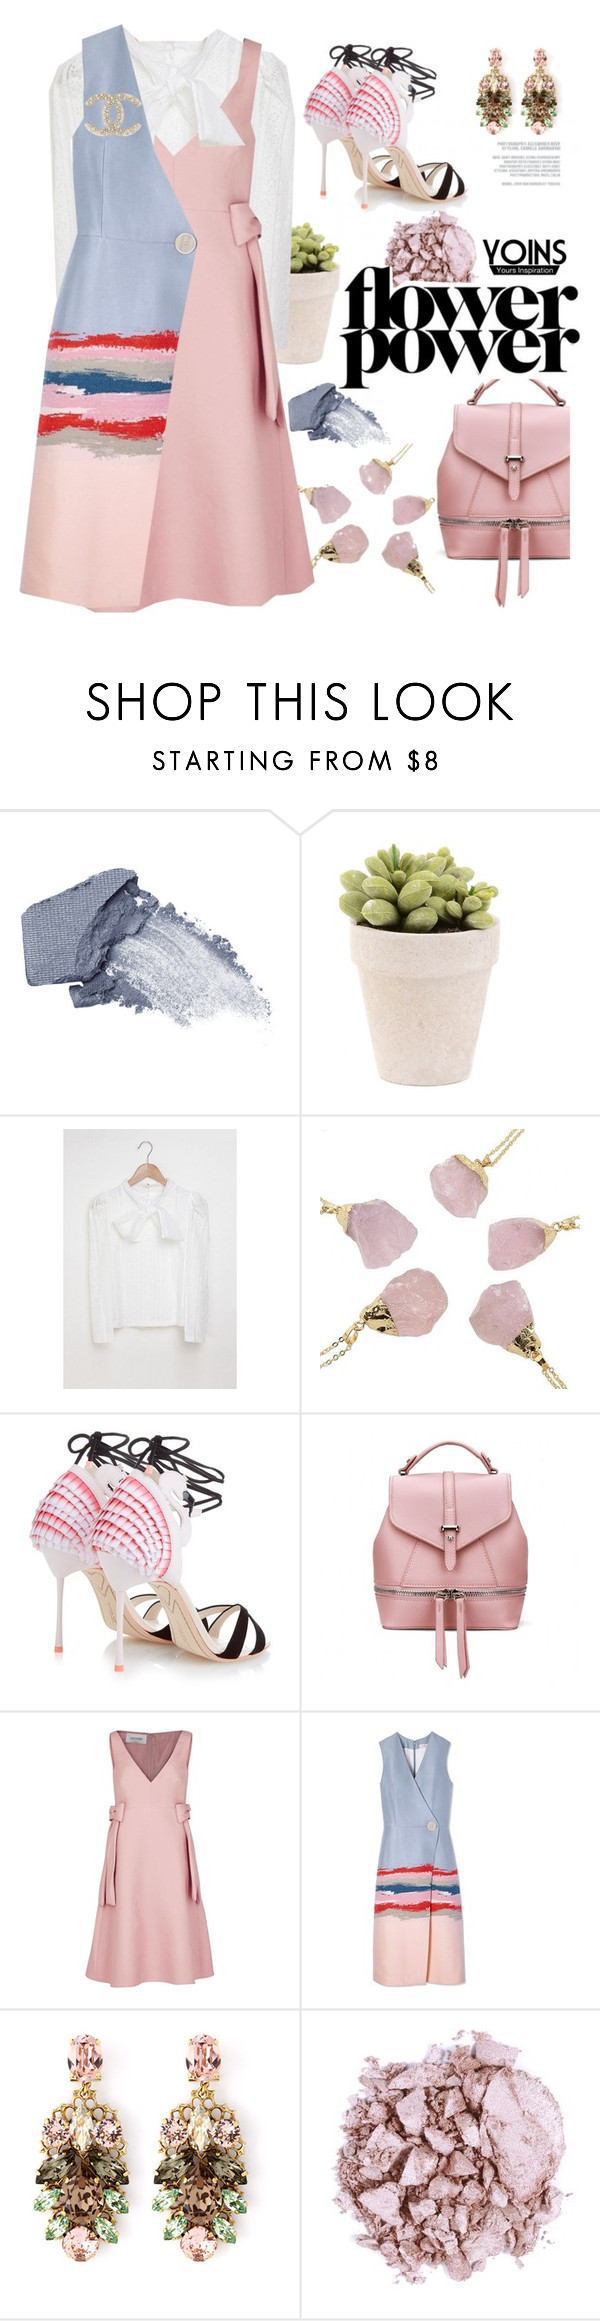 """""""Pastel perfect with yoins"""" by pensivepeacock ❤ liked on Polyvore featuring Origins, Sophia Webster, Valentino, Tory Burch, Anton Heunis and MustHave"""